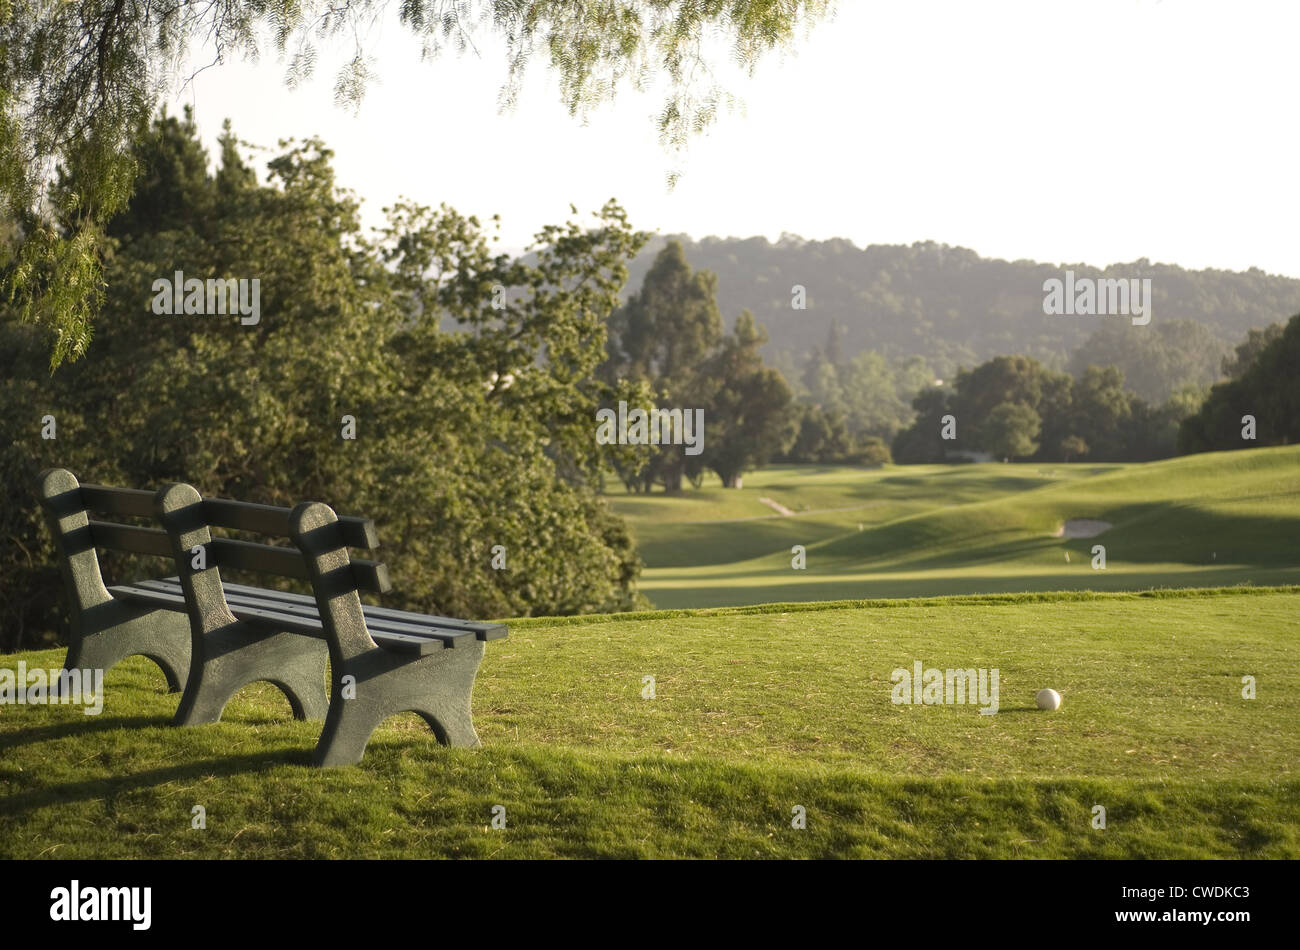 Golf Tee & Bench Stock Photo